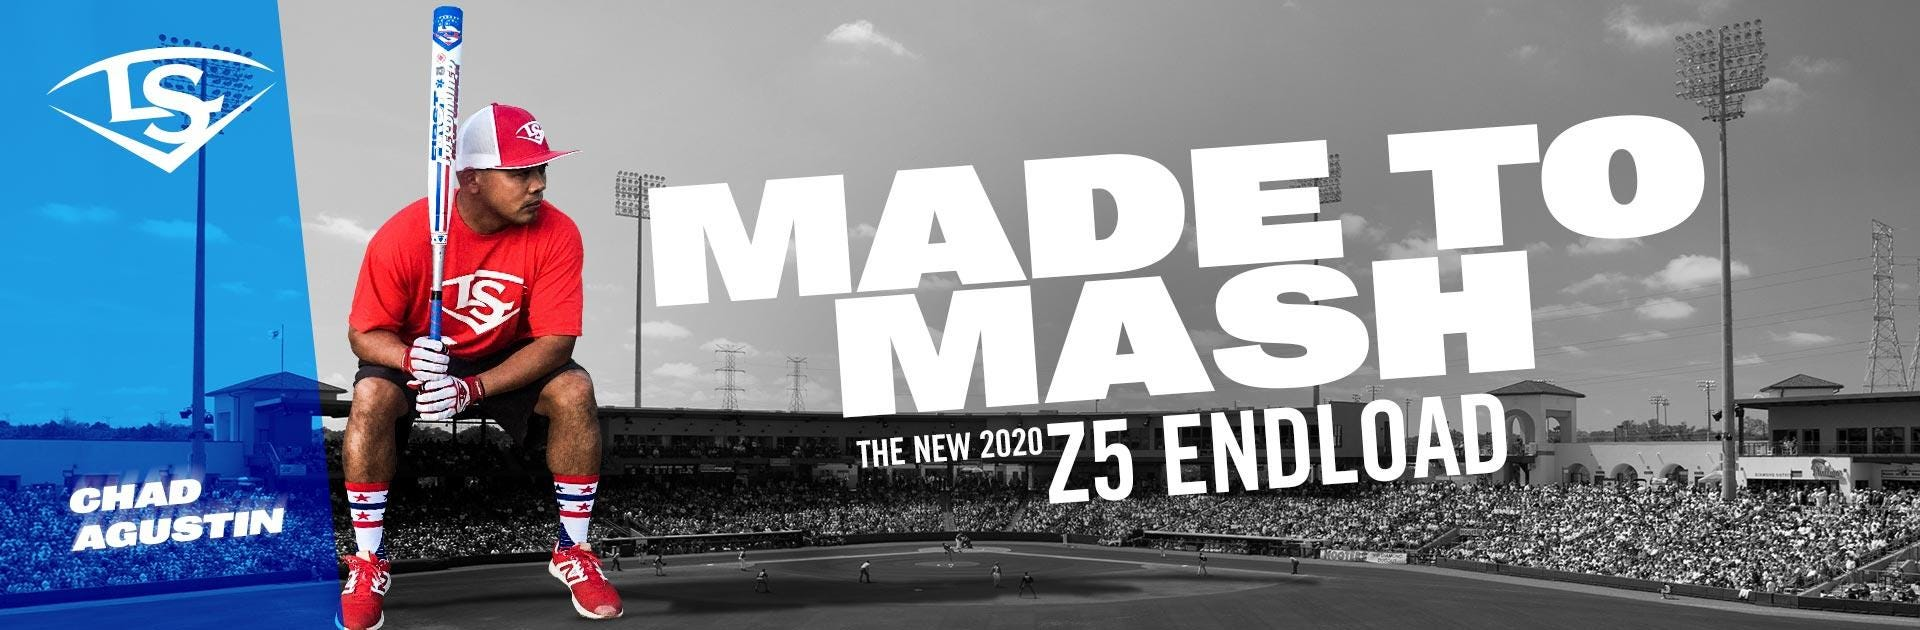 Made to Mash. The New 2020 Z5 Endload Slowpitch Softball Bat.